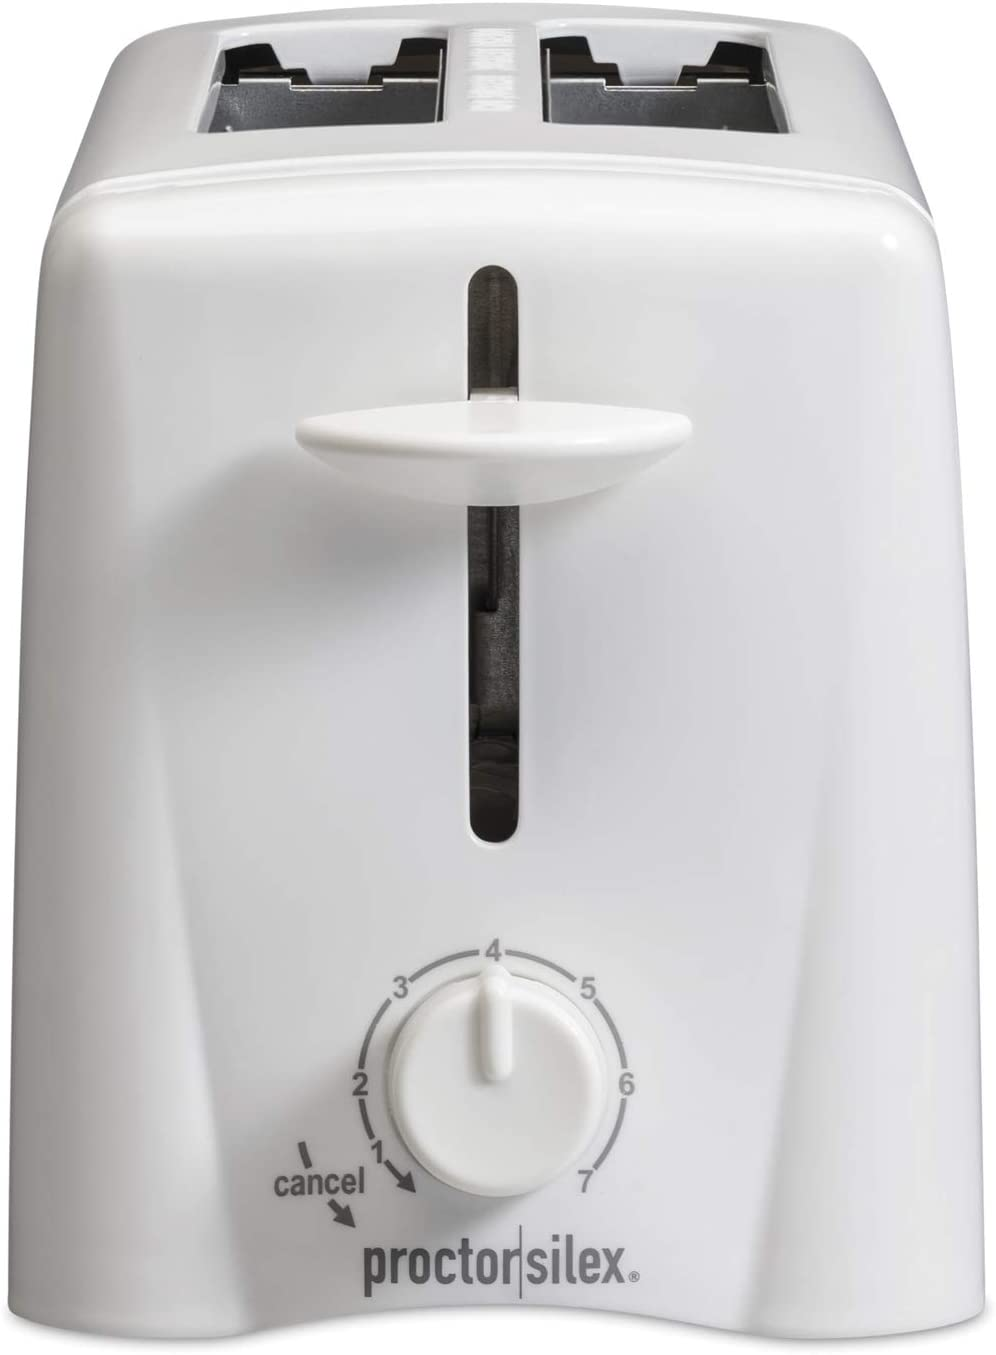 Free Shipping New Proctor Silex 2-Slice Toaster with Selector Boost Las Vegas Mall Shade Toast